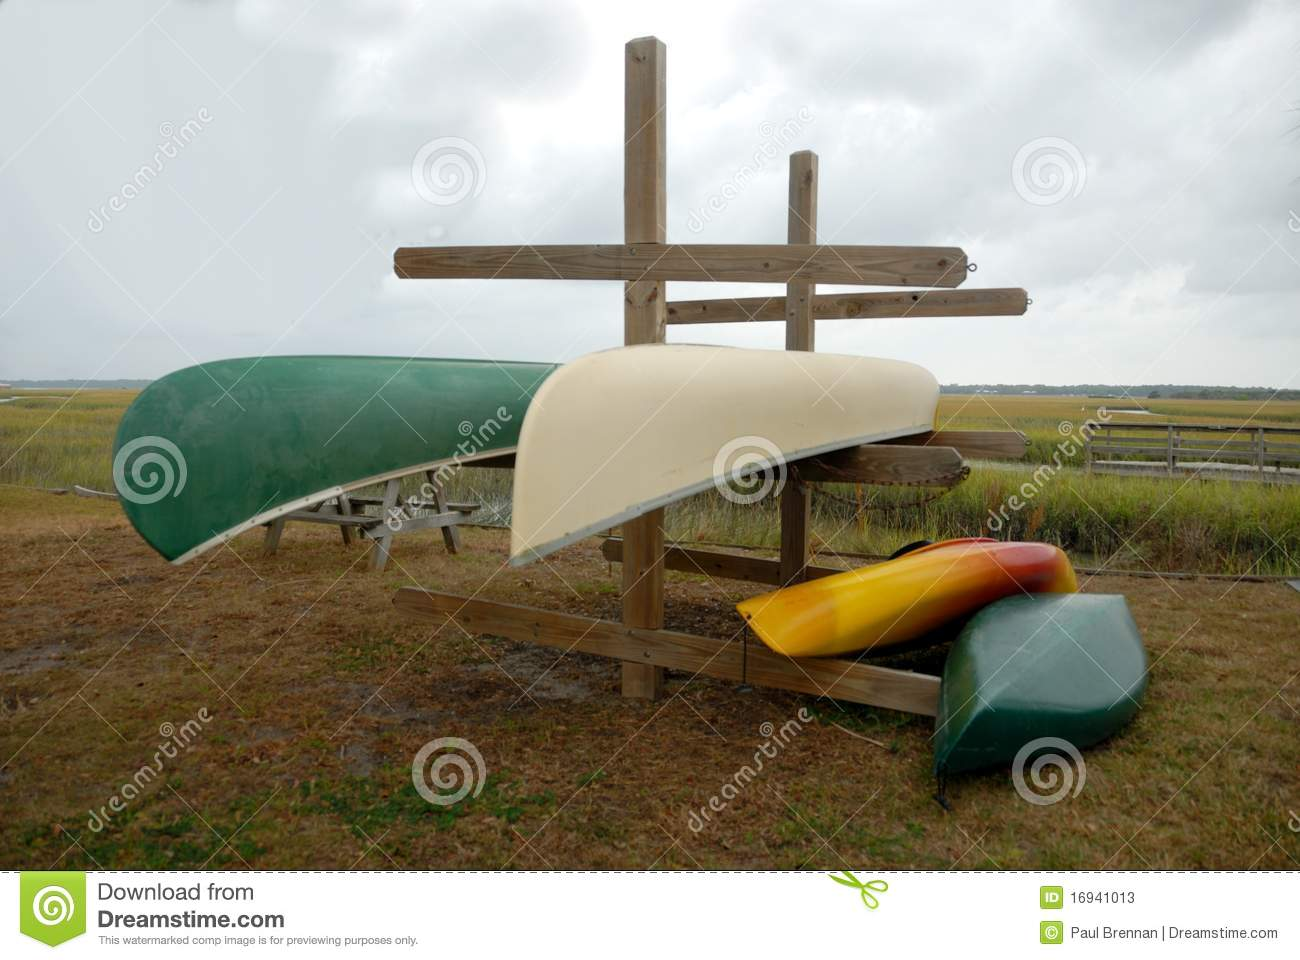 Colorful upturned canoes stored on wooden rack in countryside.